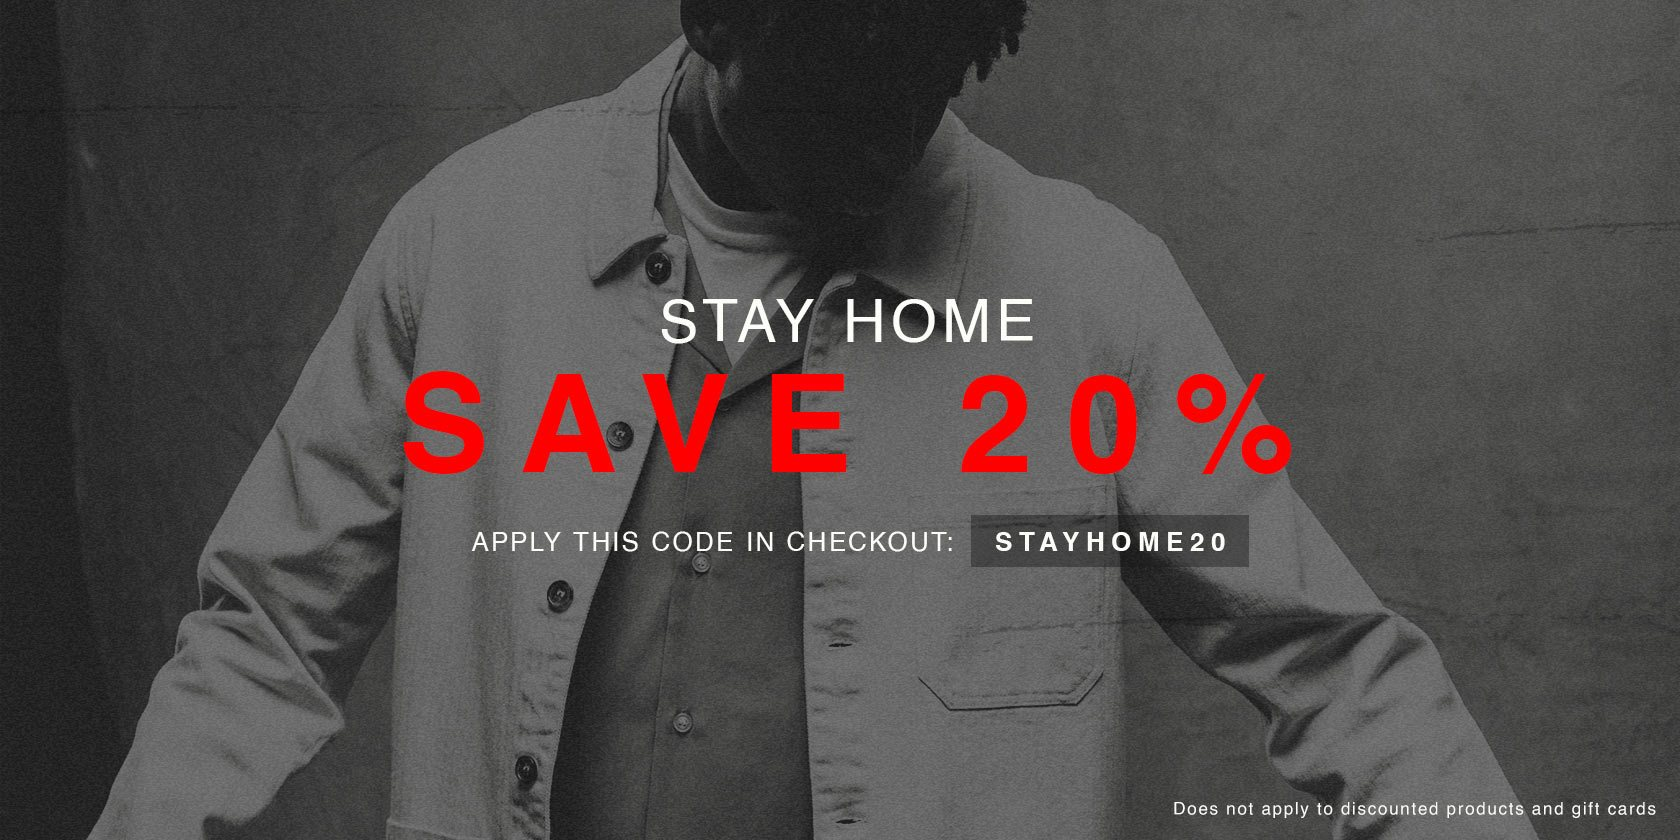 Stay Home 20%